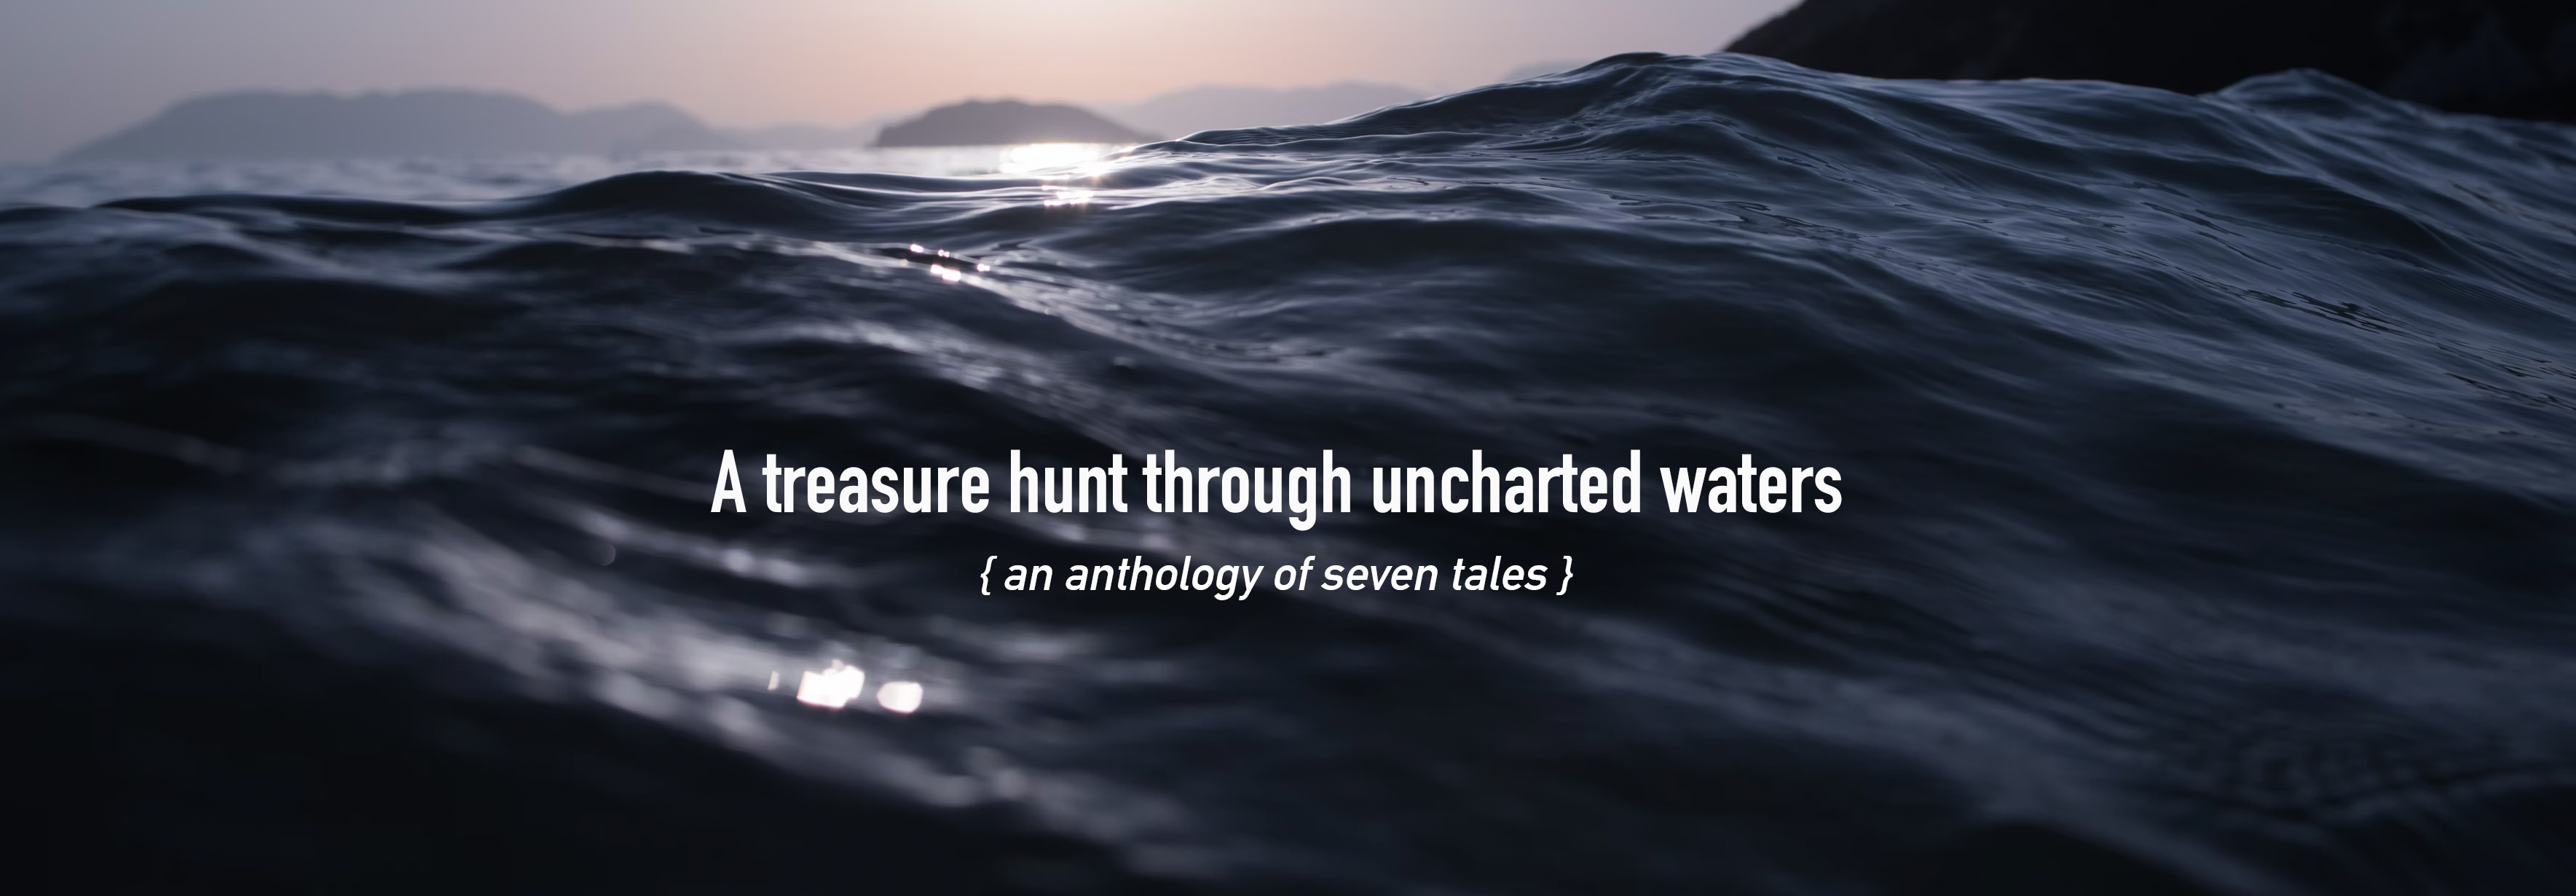 """A close up shot of waves in deep blue colour with sun shining on it. A title written on them says """"A treasure hunt through uncharted waters (an anthology of seven tales)"""""""